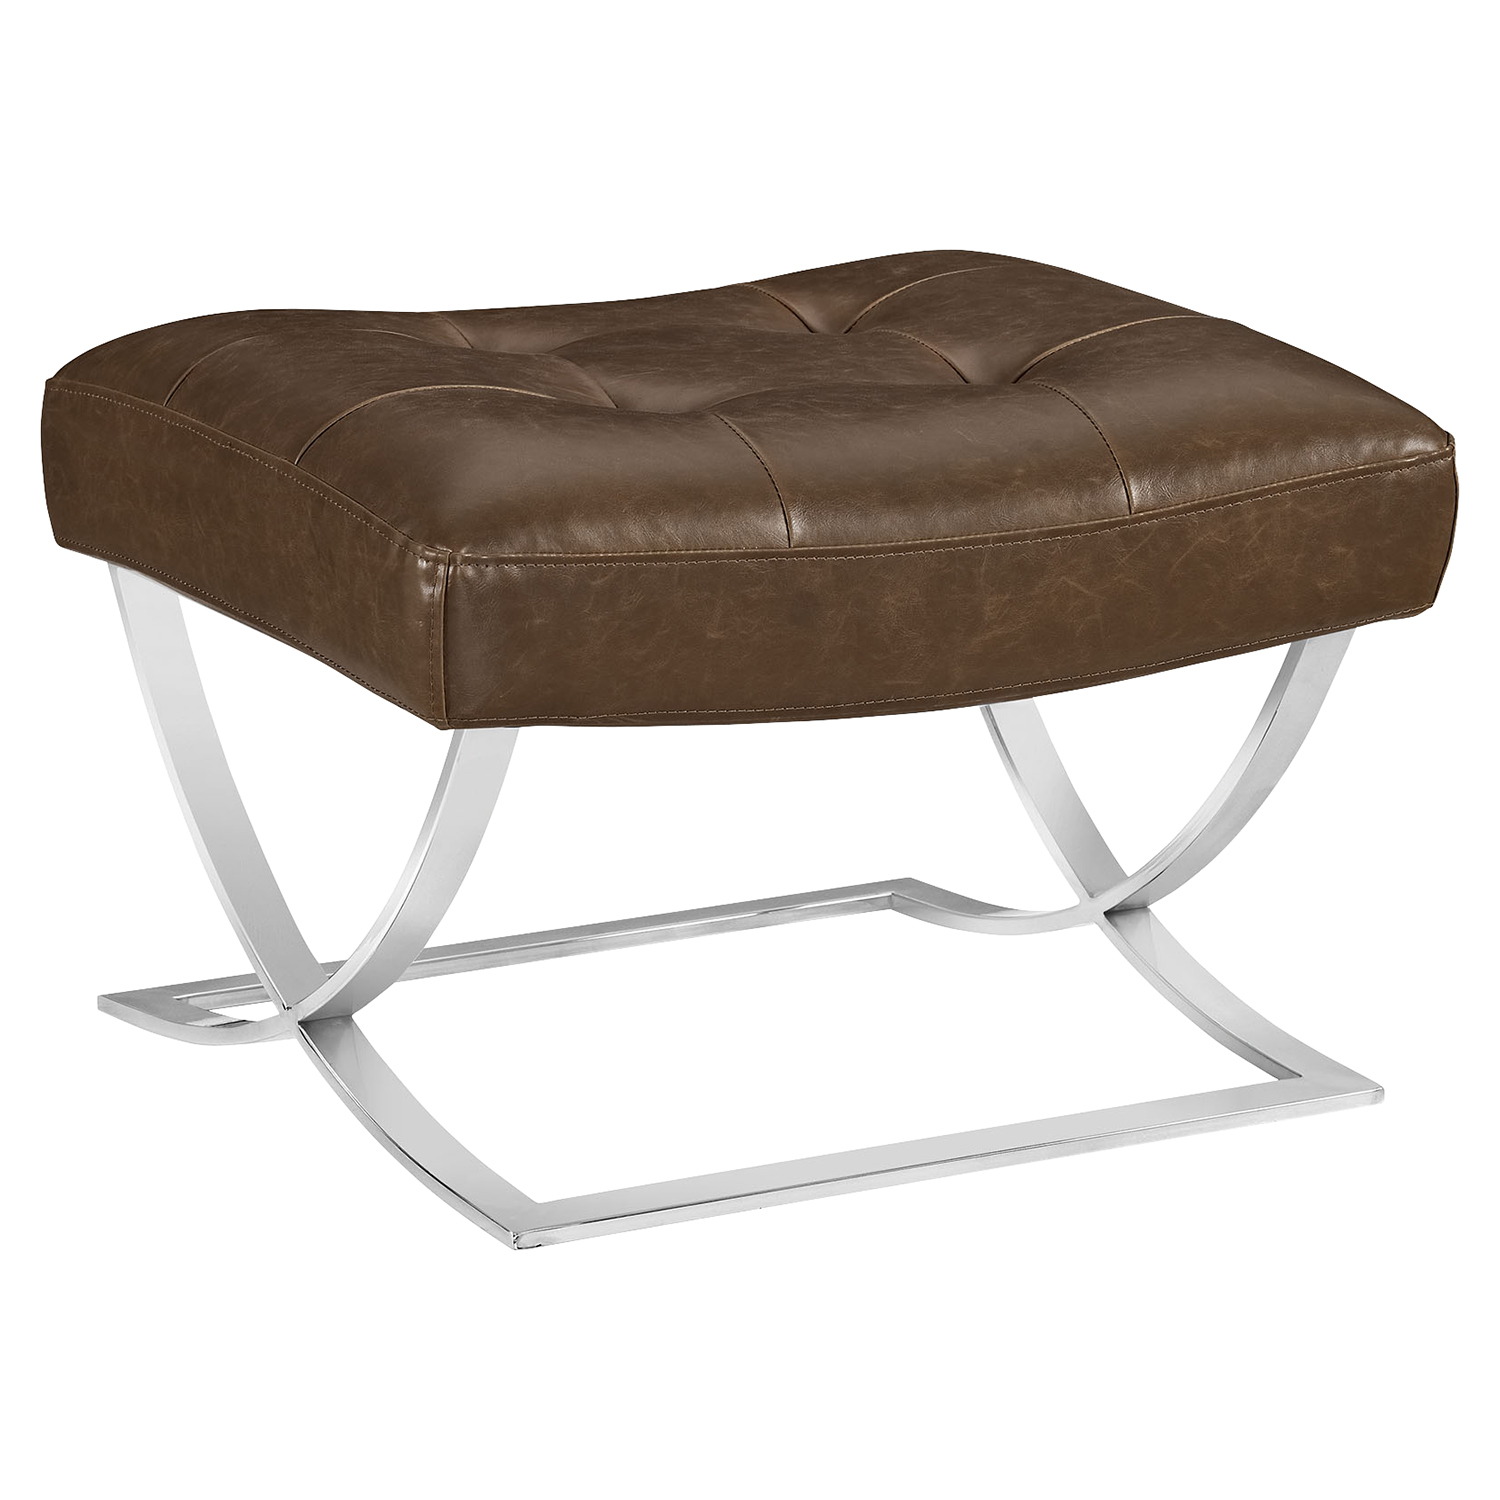 Slope Leatherette Ottoman - Tufted, Brown